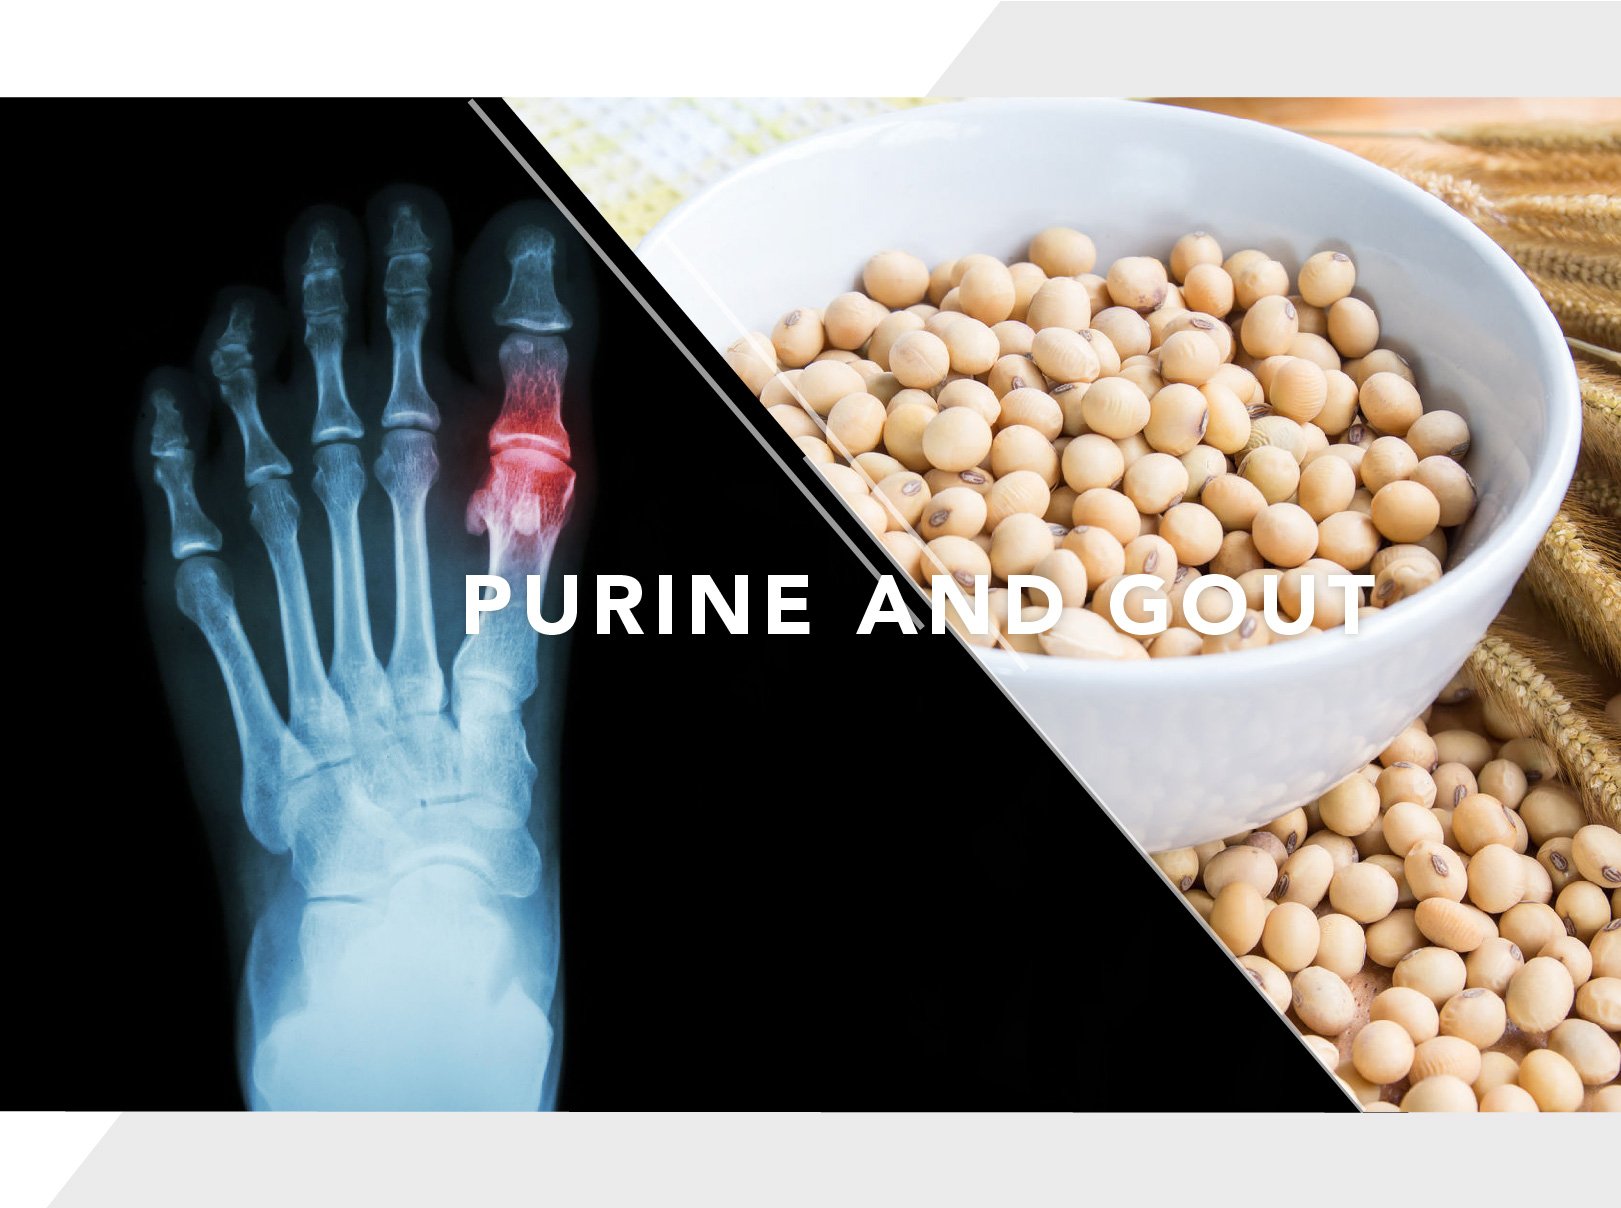 Purine and Gout